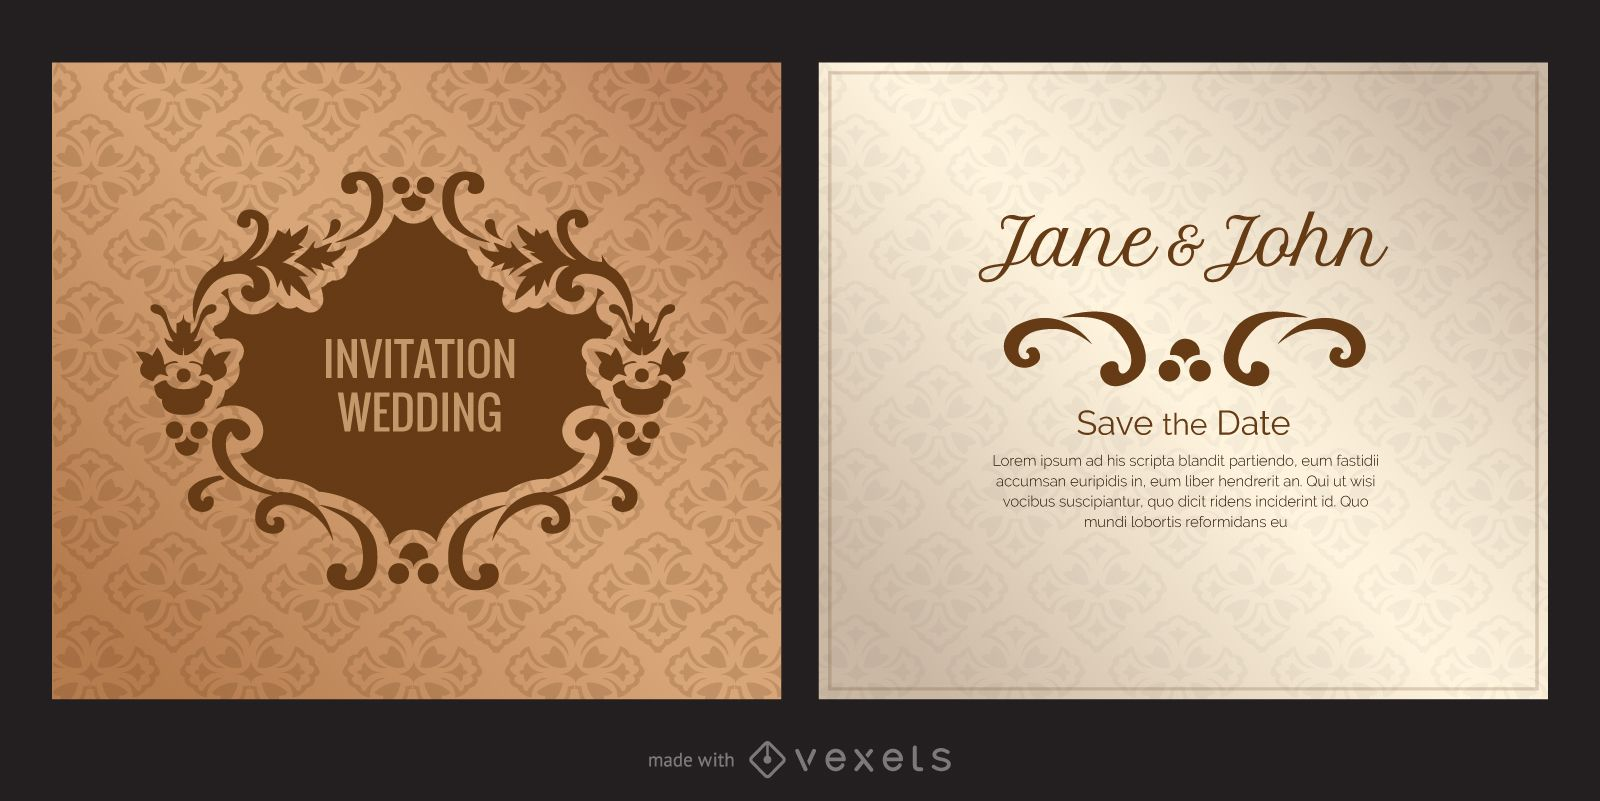 Wedding card invitation maker editable design wedding card invitation maker download large image 1600x801px stopboris